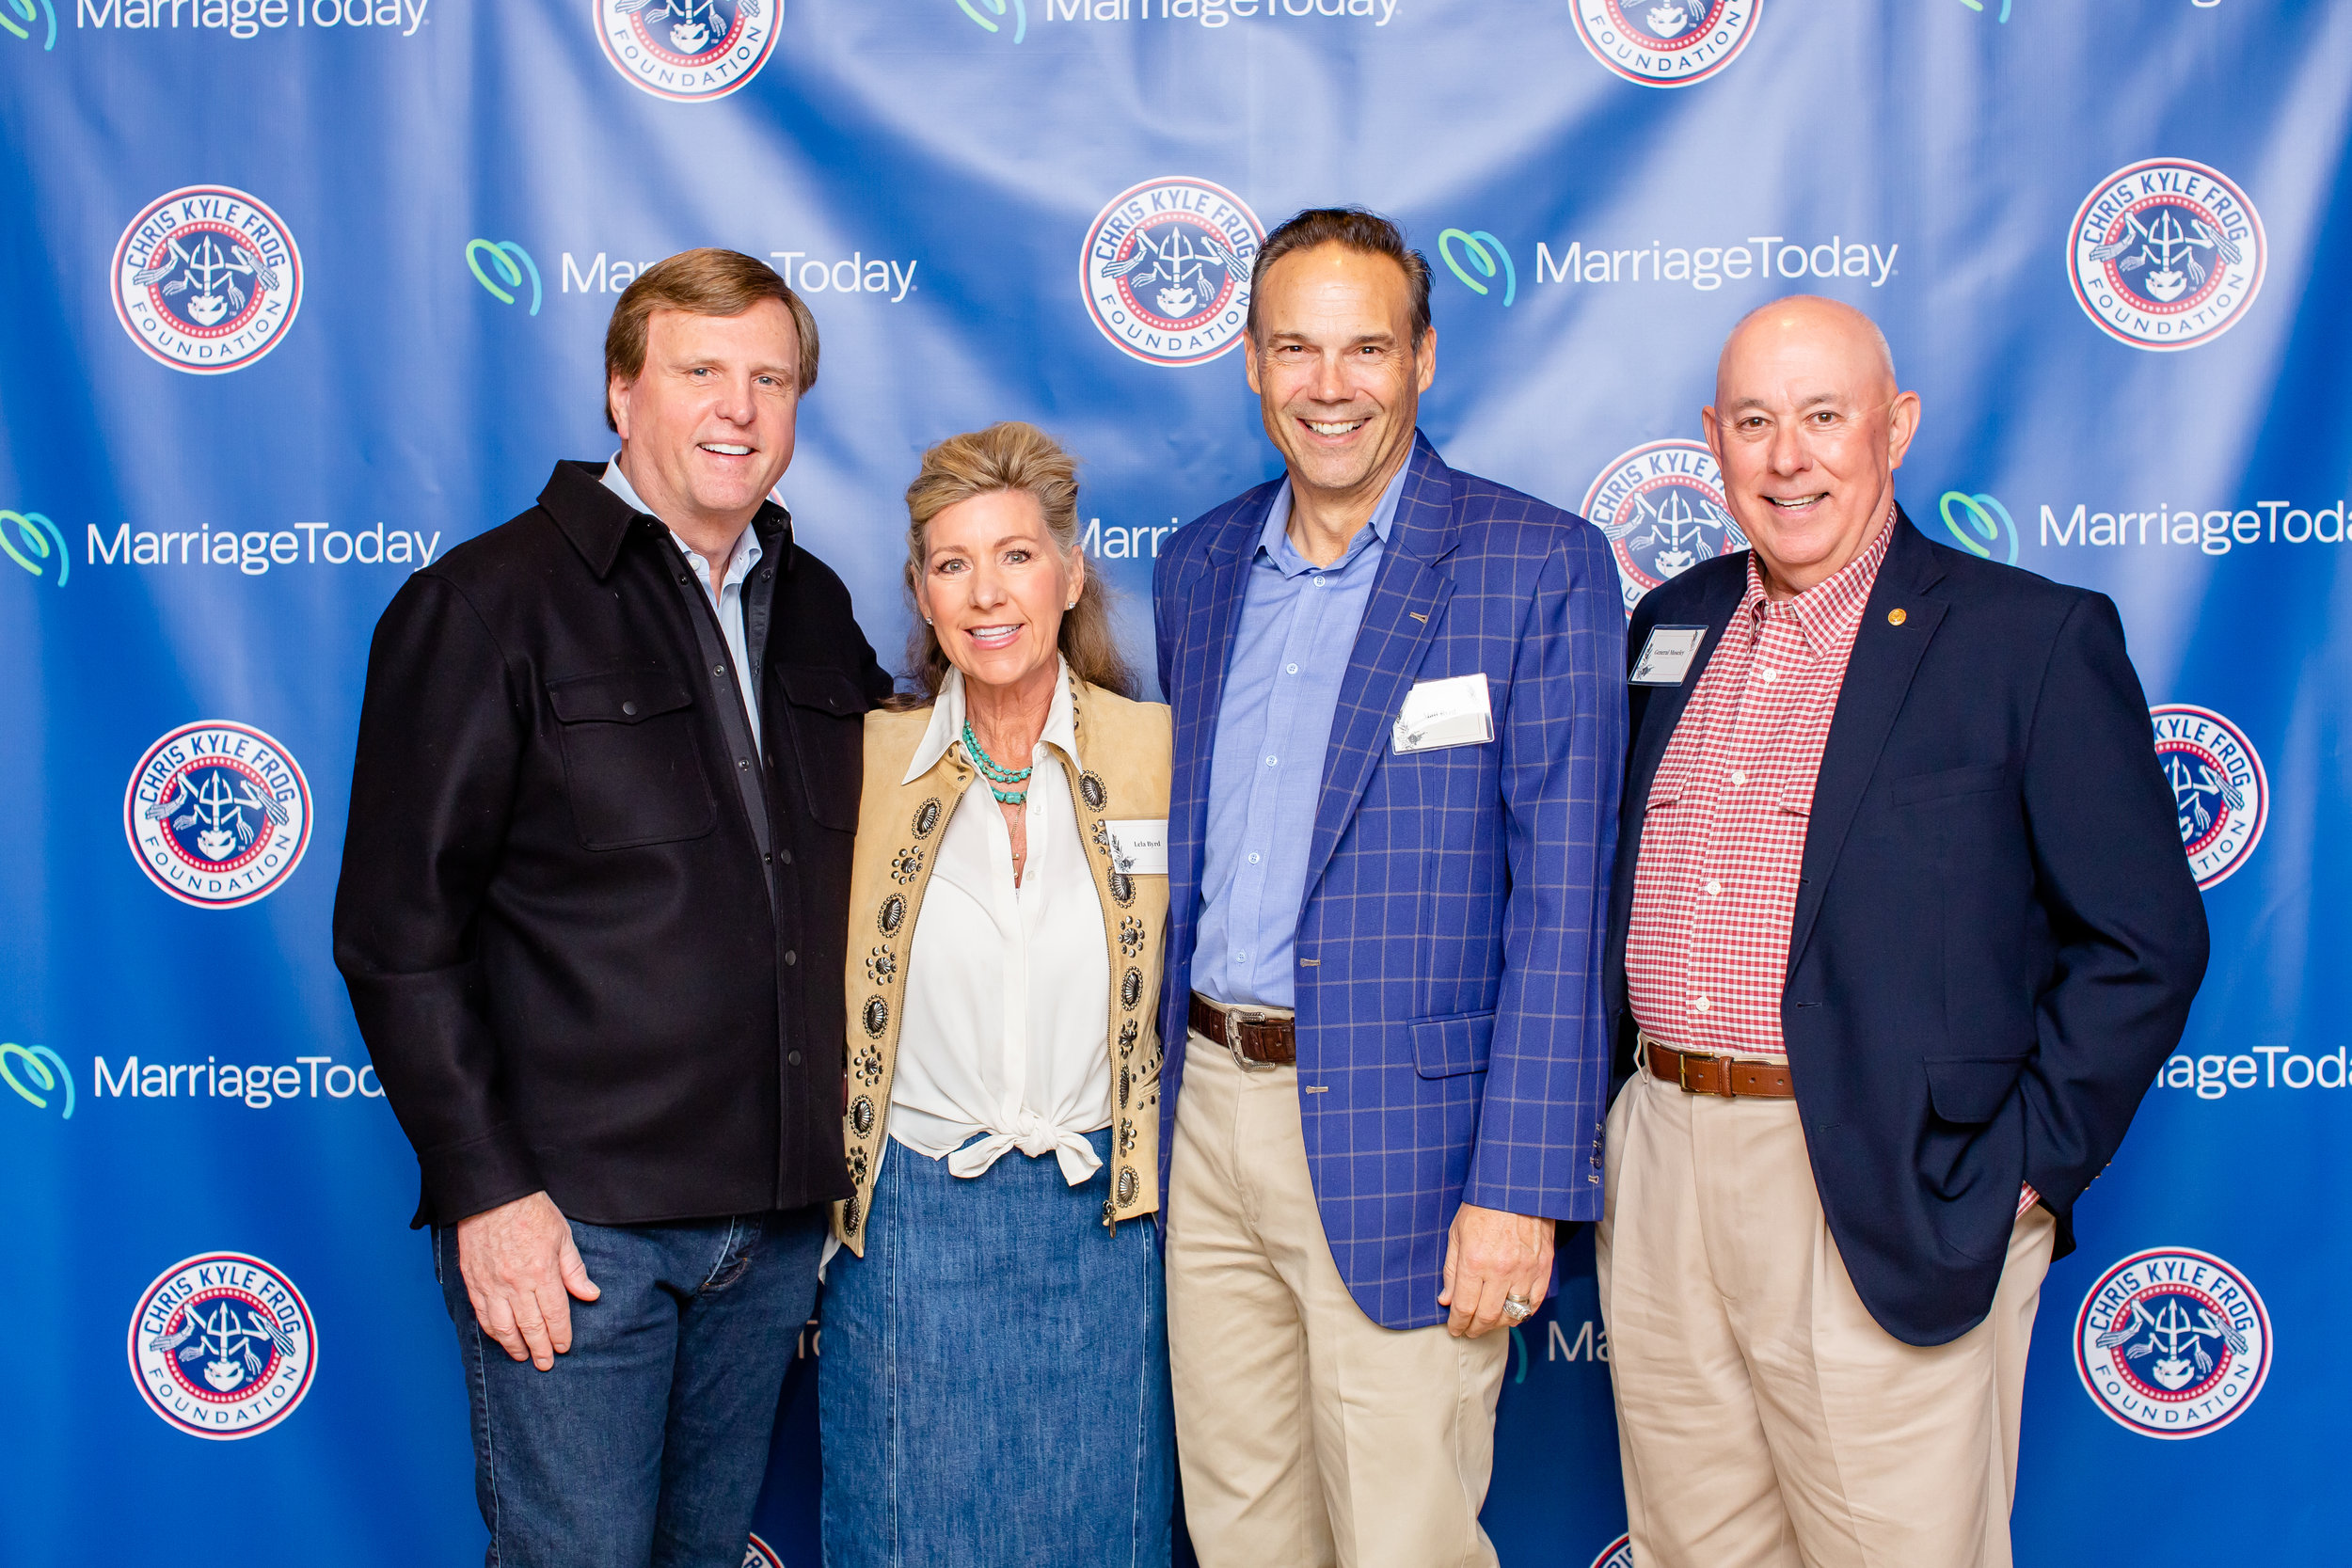 Alexa-Vossler-Photo_Dallas-Photographer_MarriageToday-American-Heroes-Event-61.jpg